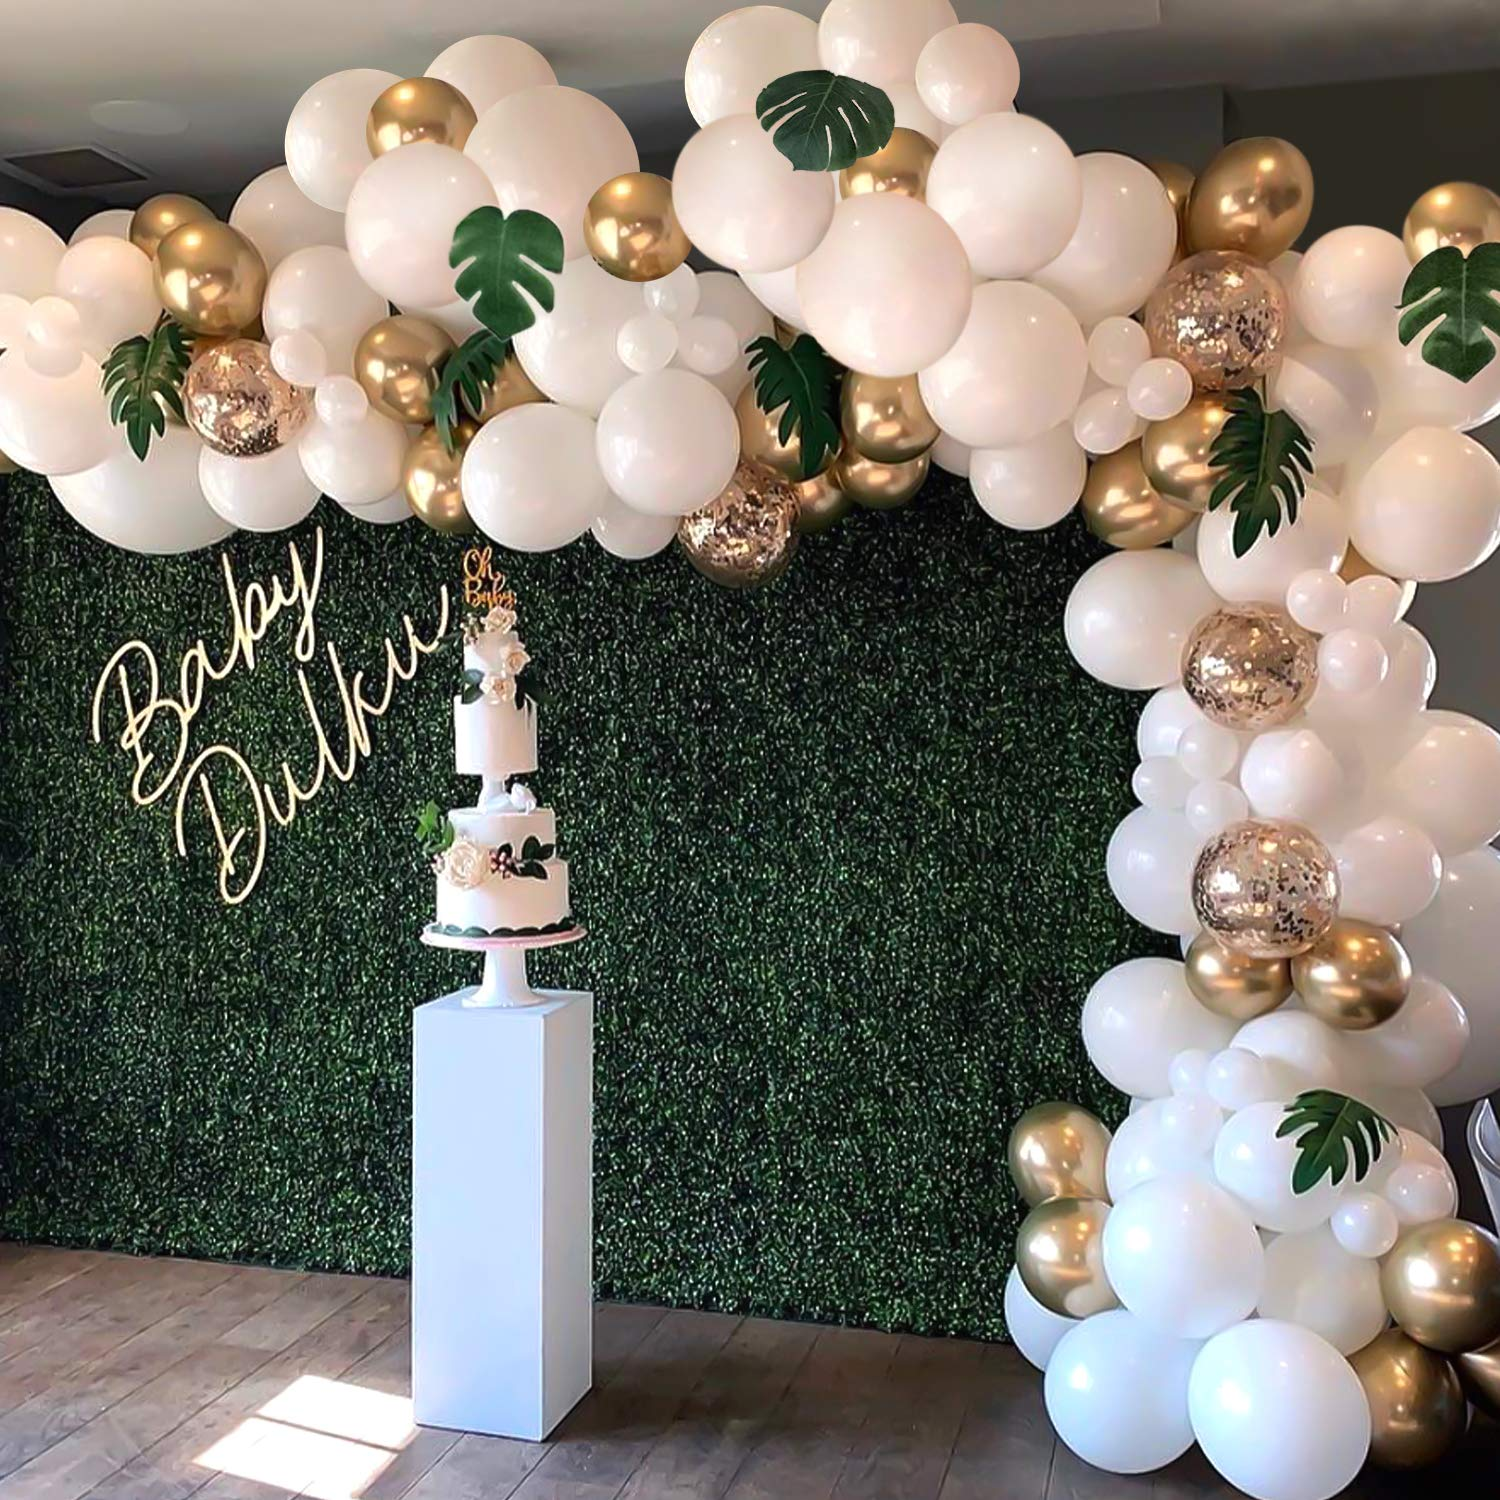 98pcs White Gold Balloon Garland Arch Kit For Birthday Party Wedding  Decorations Spring Green Leaves With Wedding Arche Ballon|Ballons &  Accessories| - AliExpress